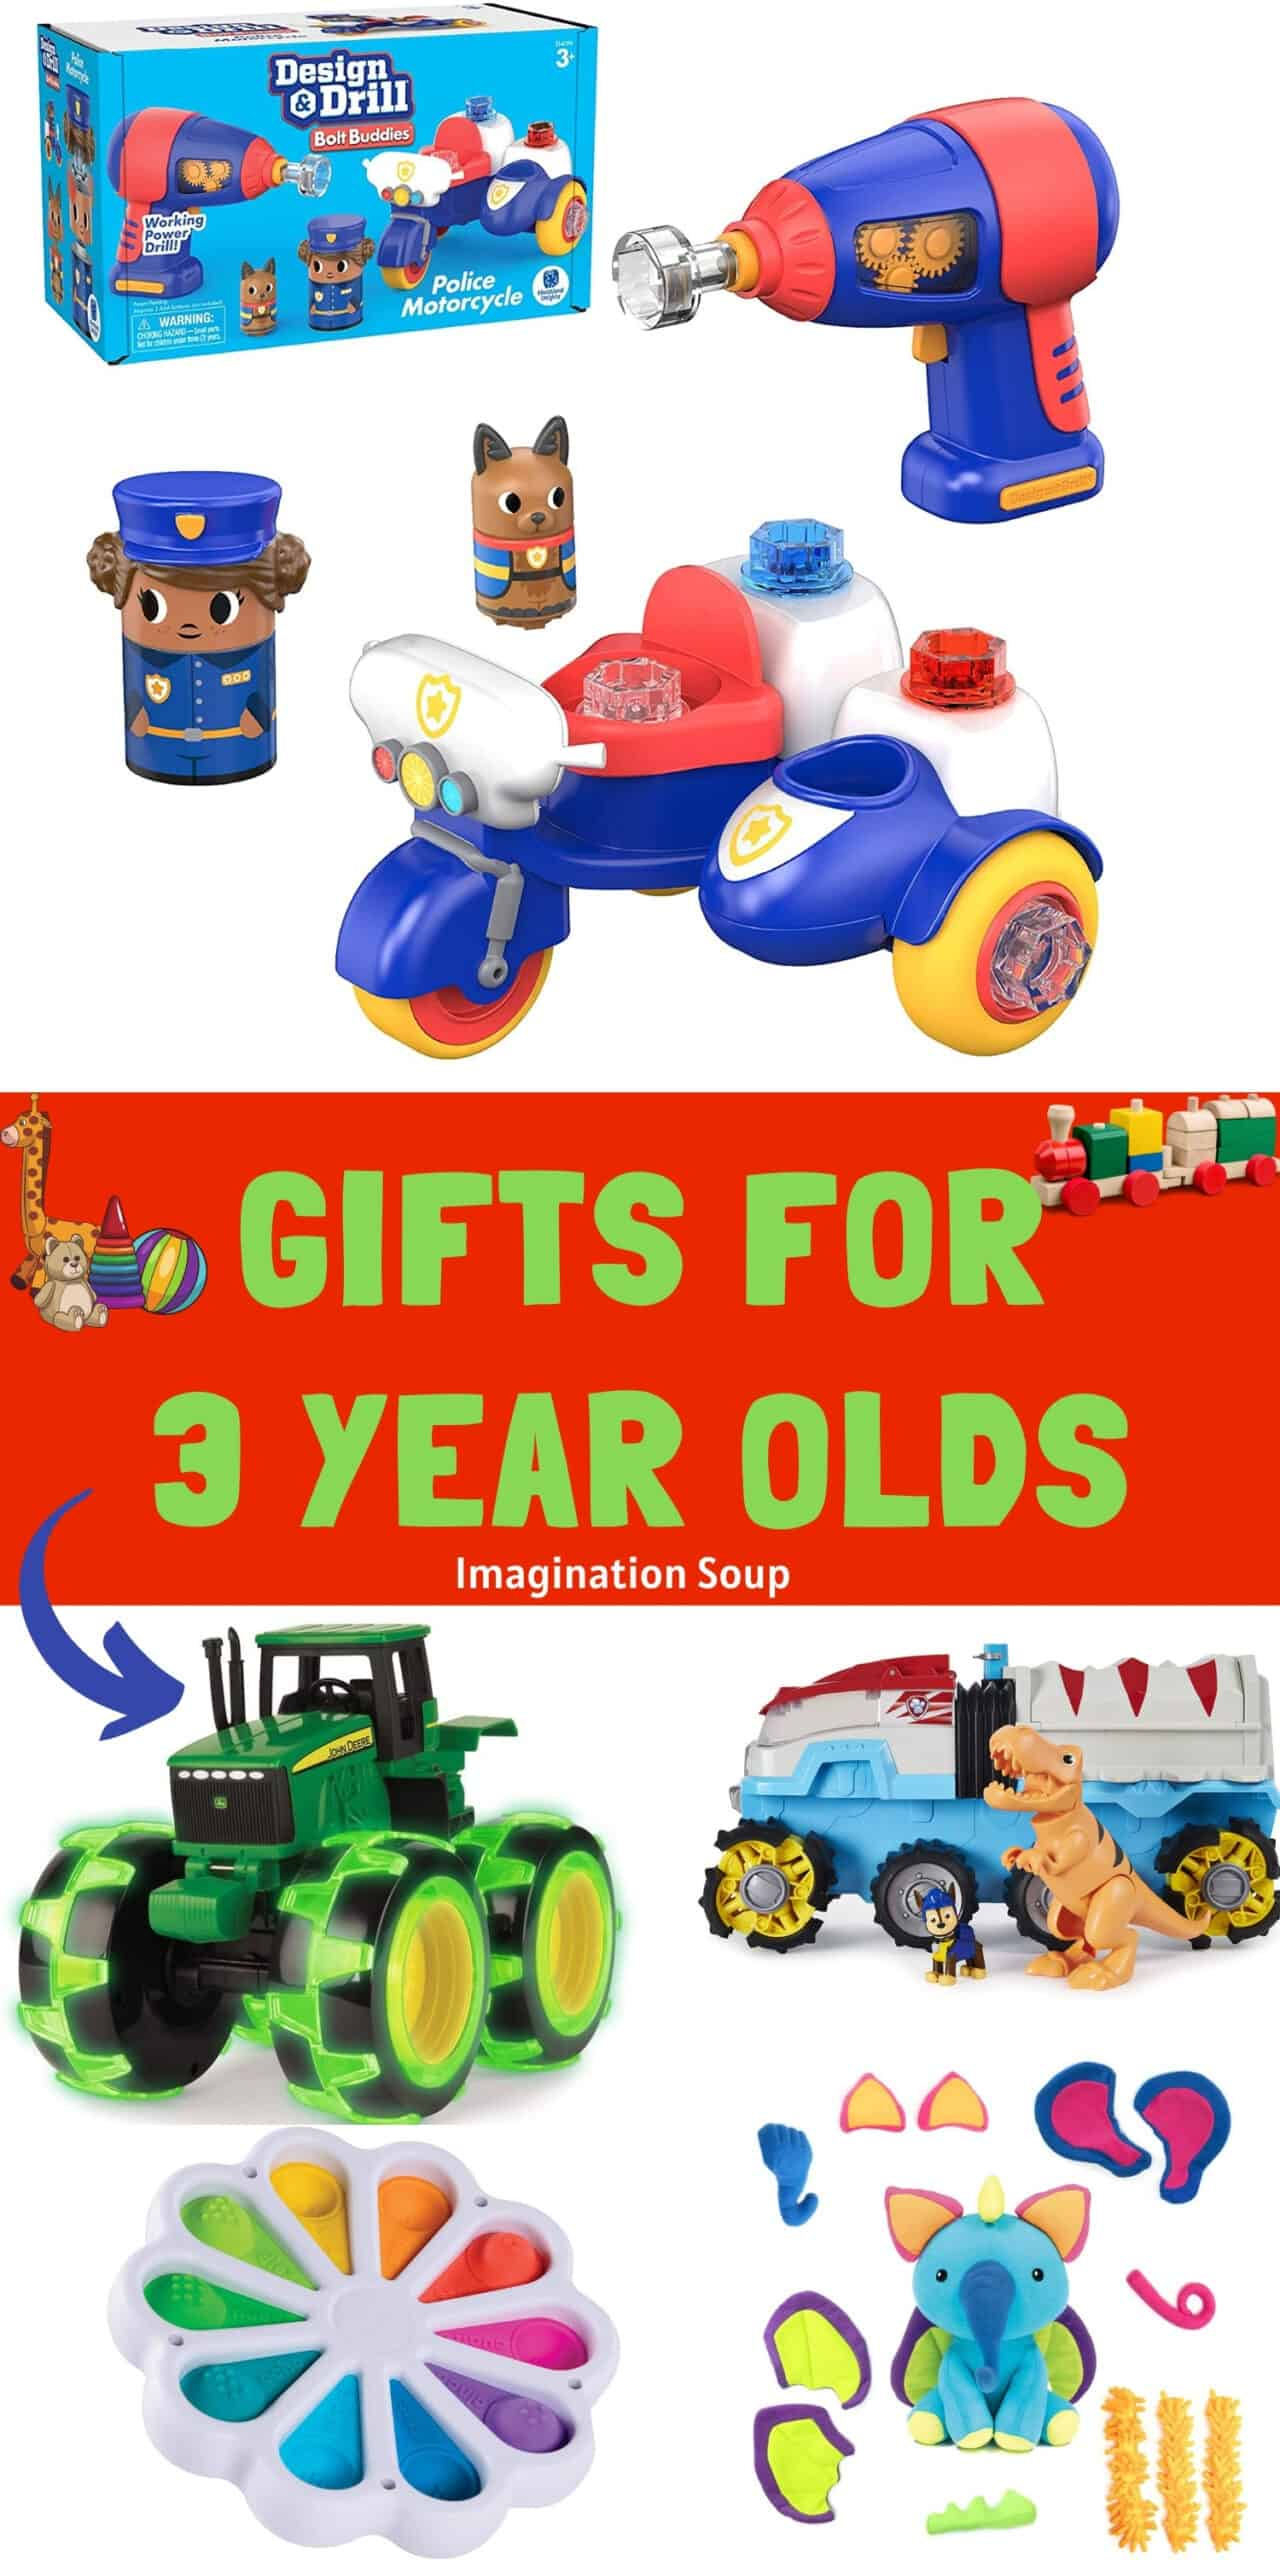 Toys and Gifts for 3 Year Olds